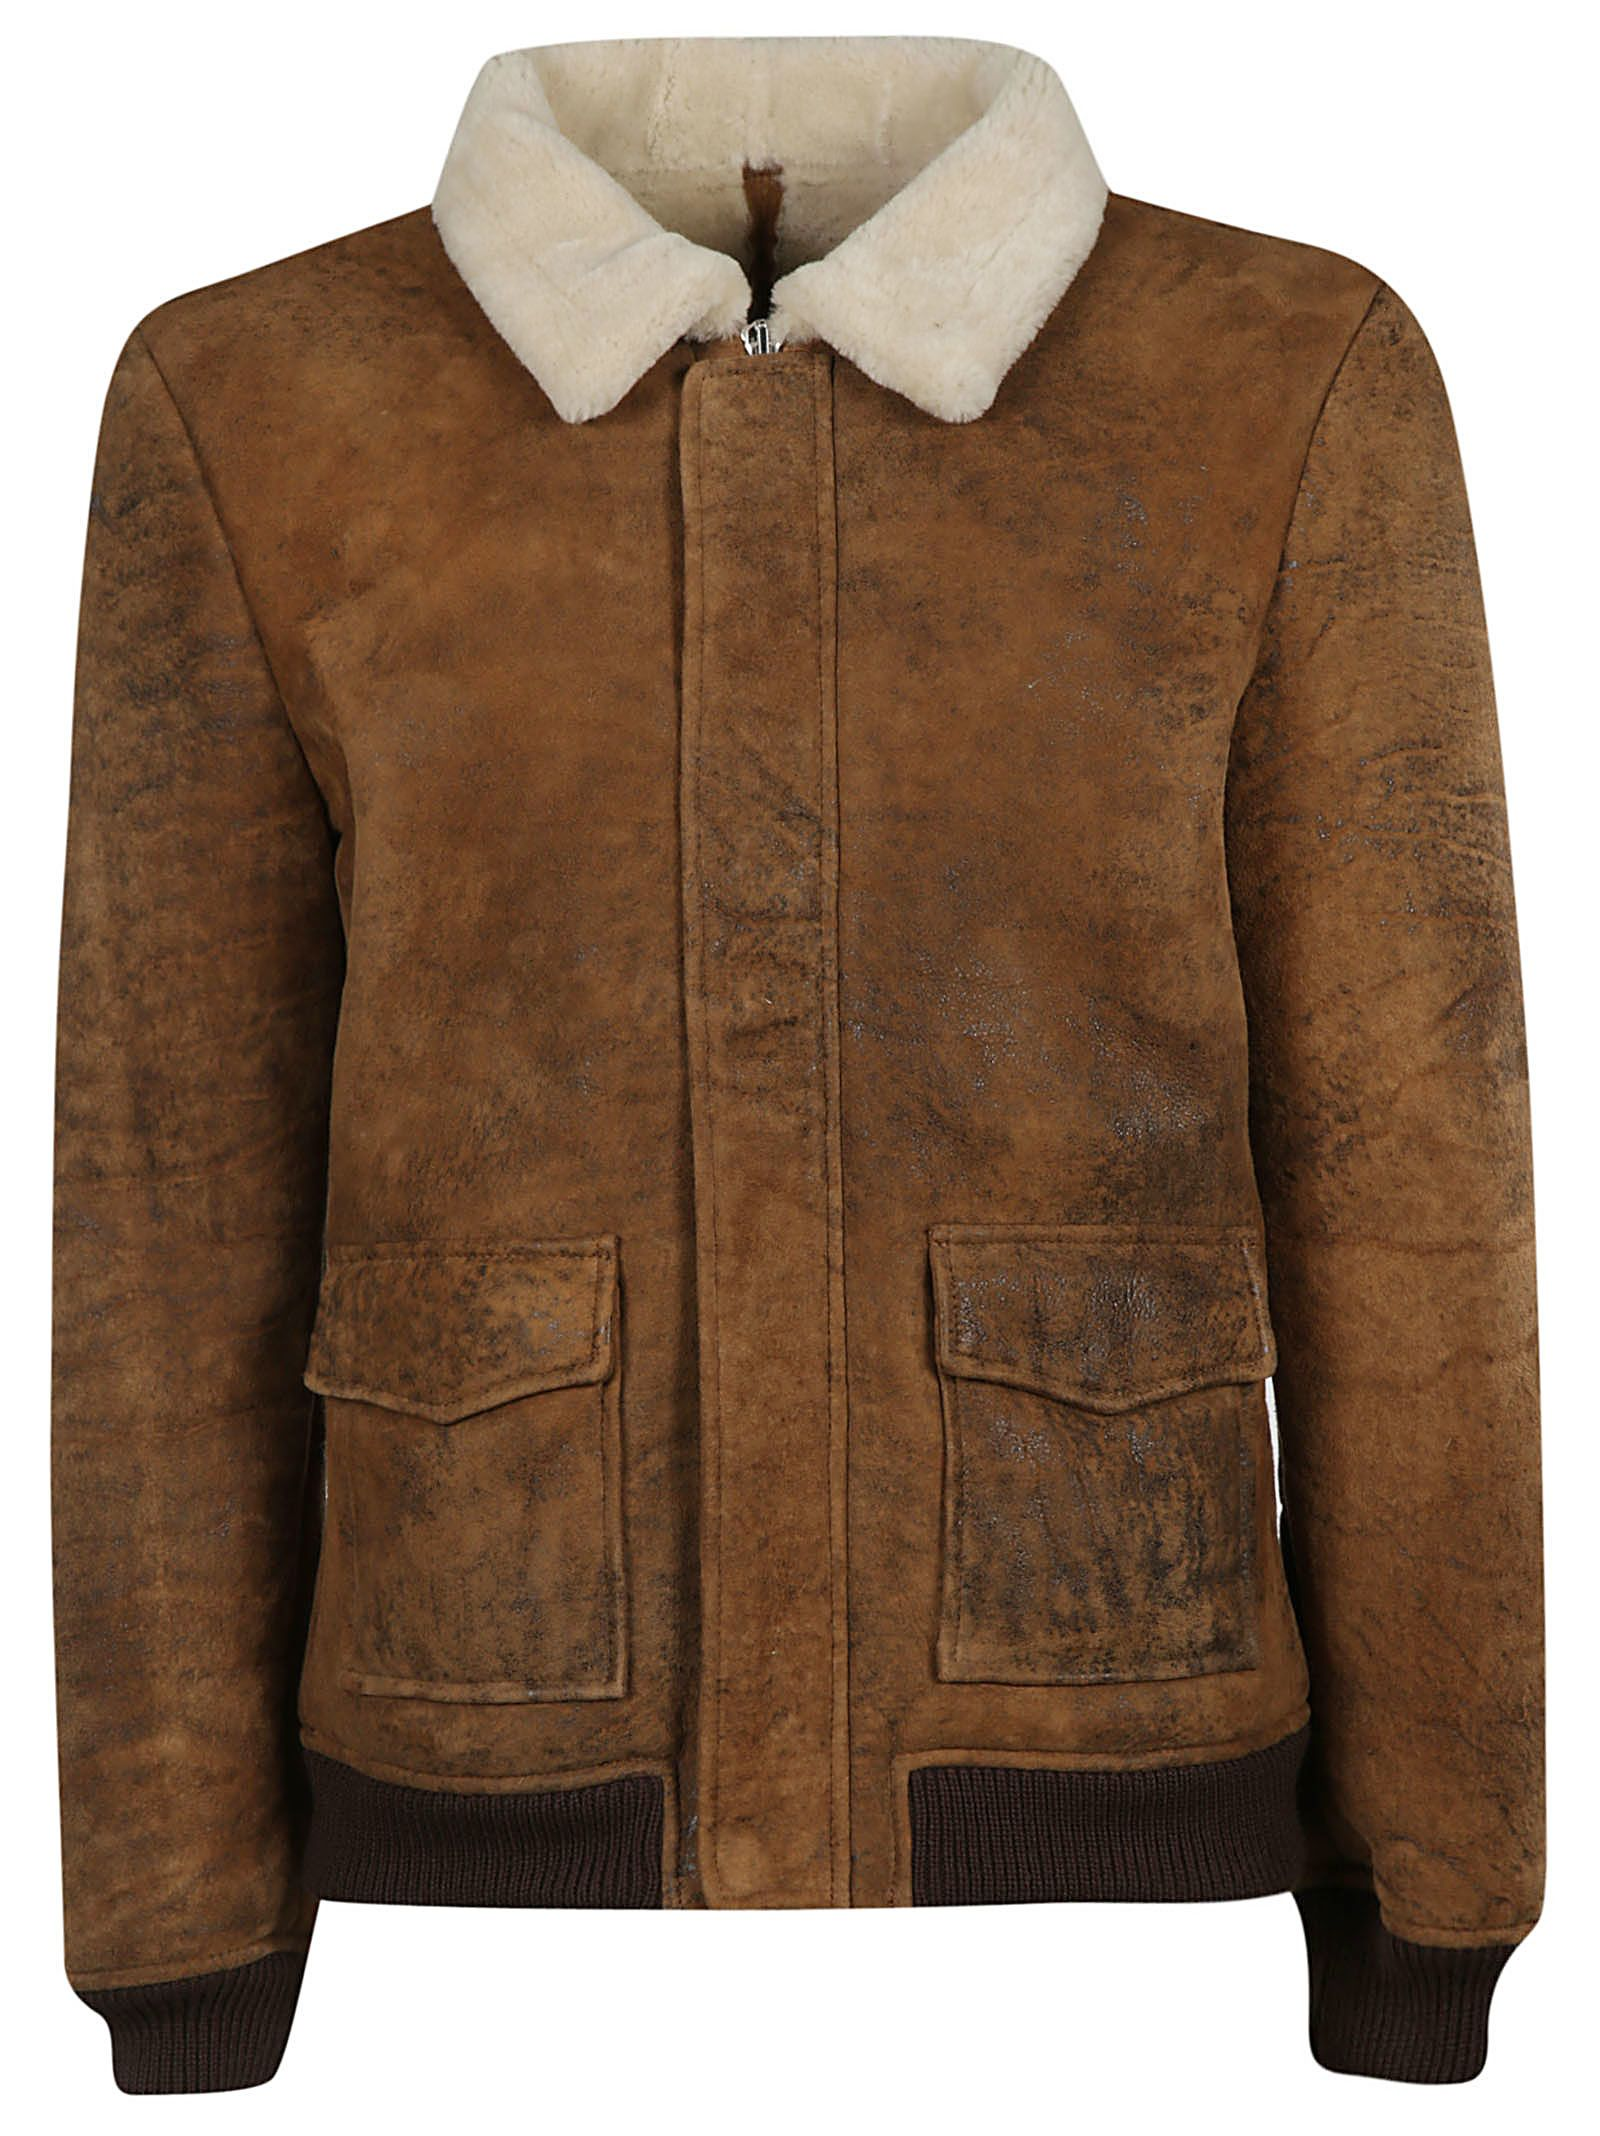 S.W.O.R.D 6.6.44 Vintage Biscuit Shearling Jacket - Neutrals